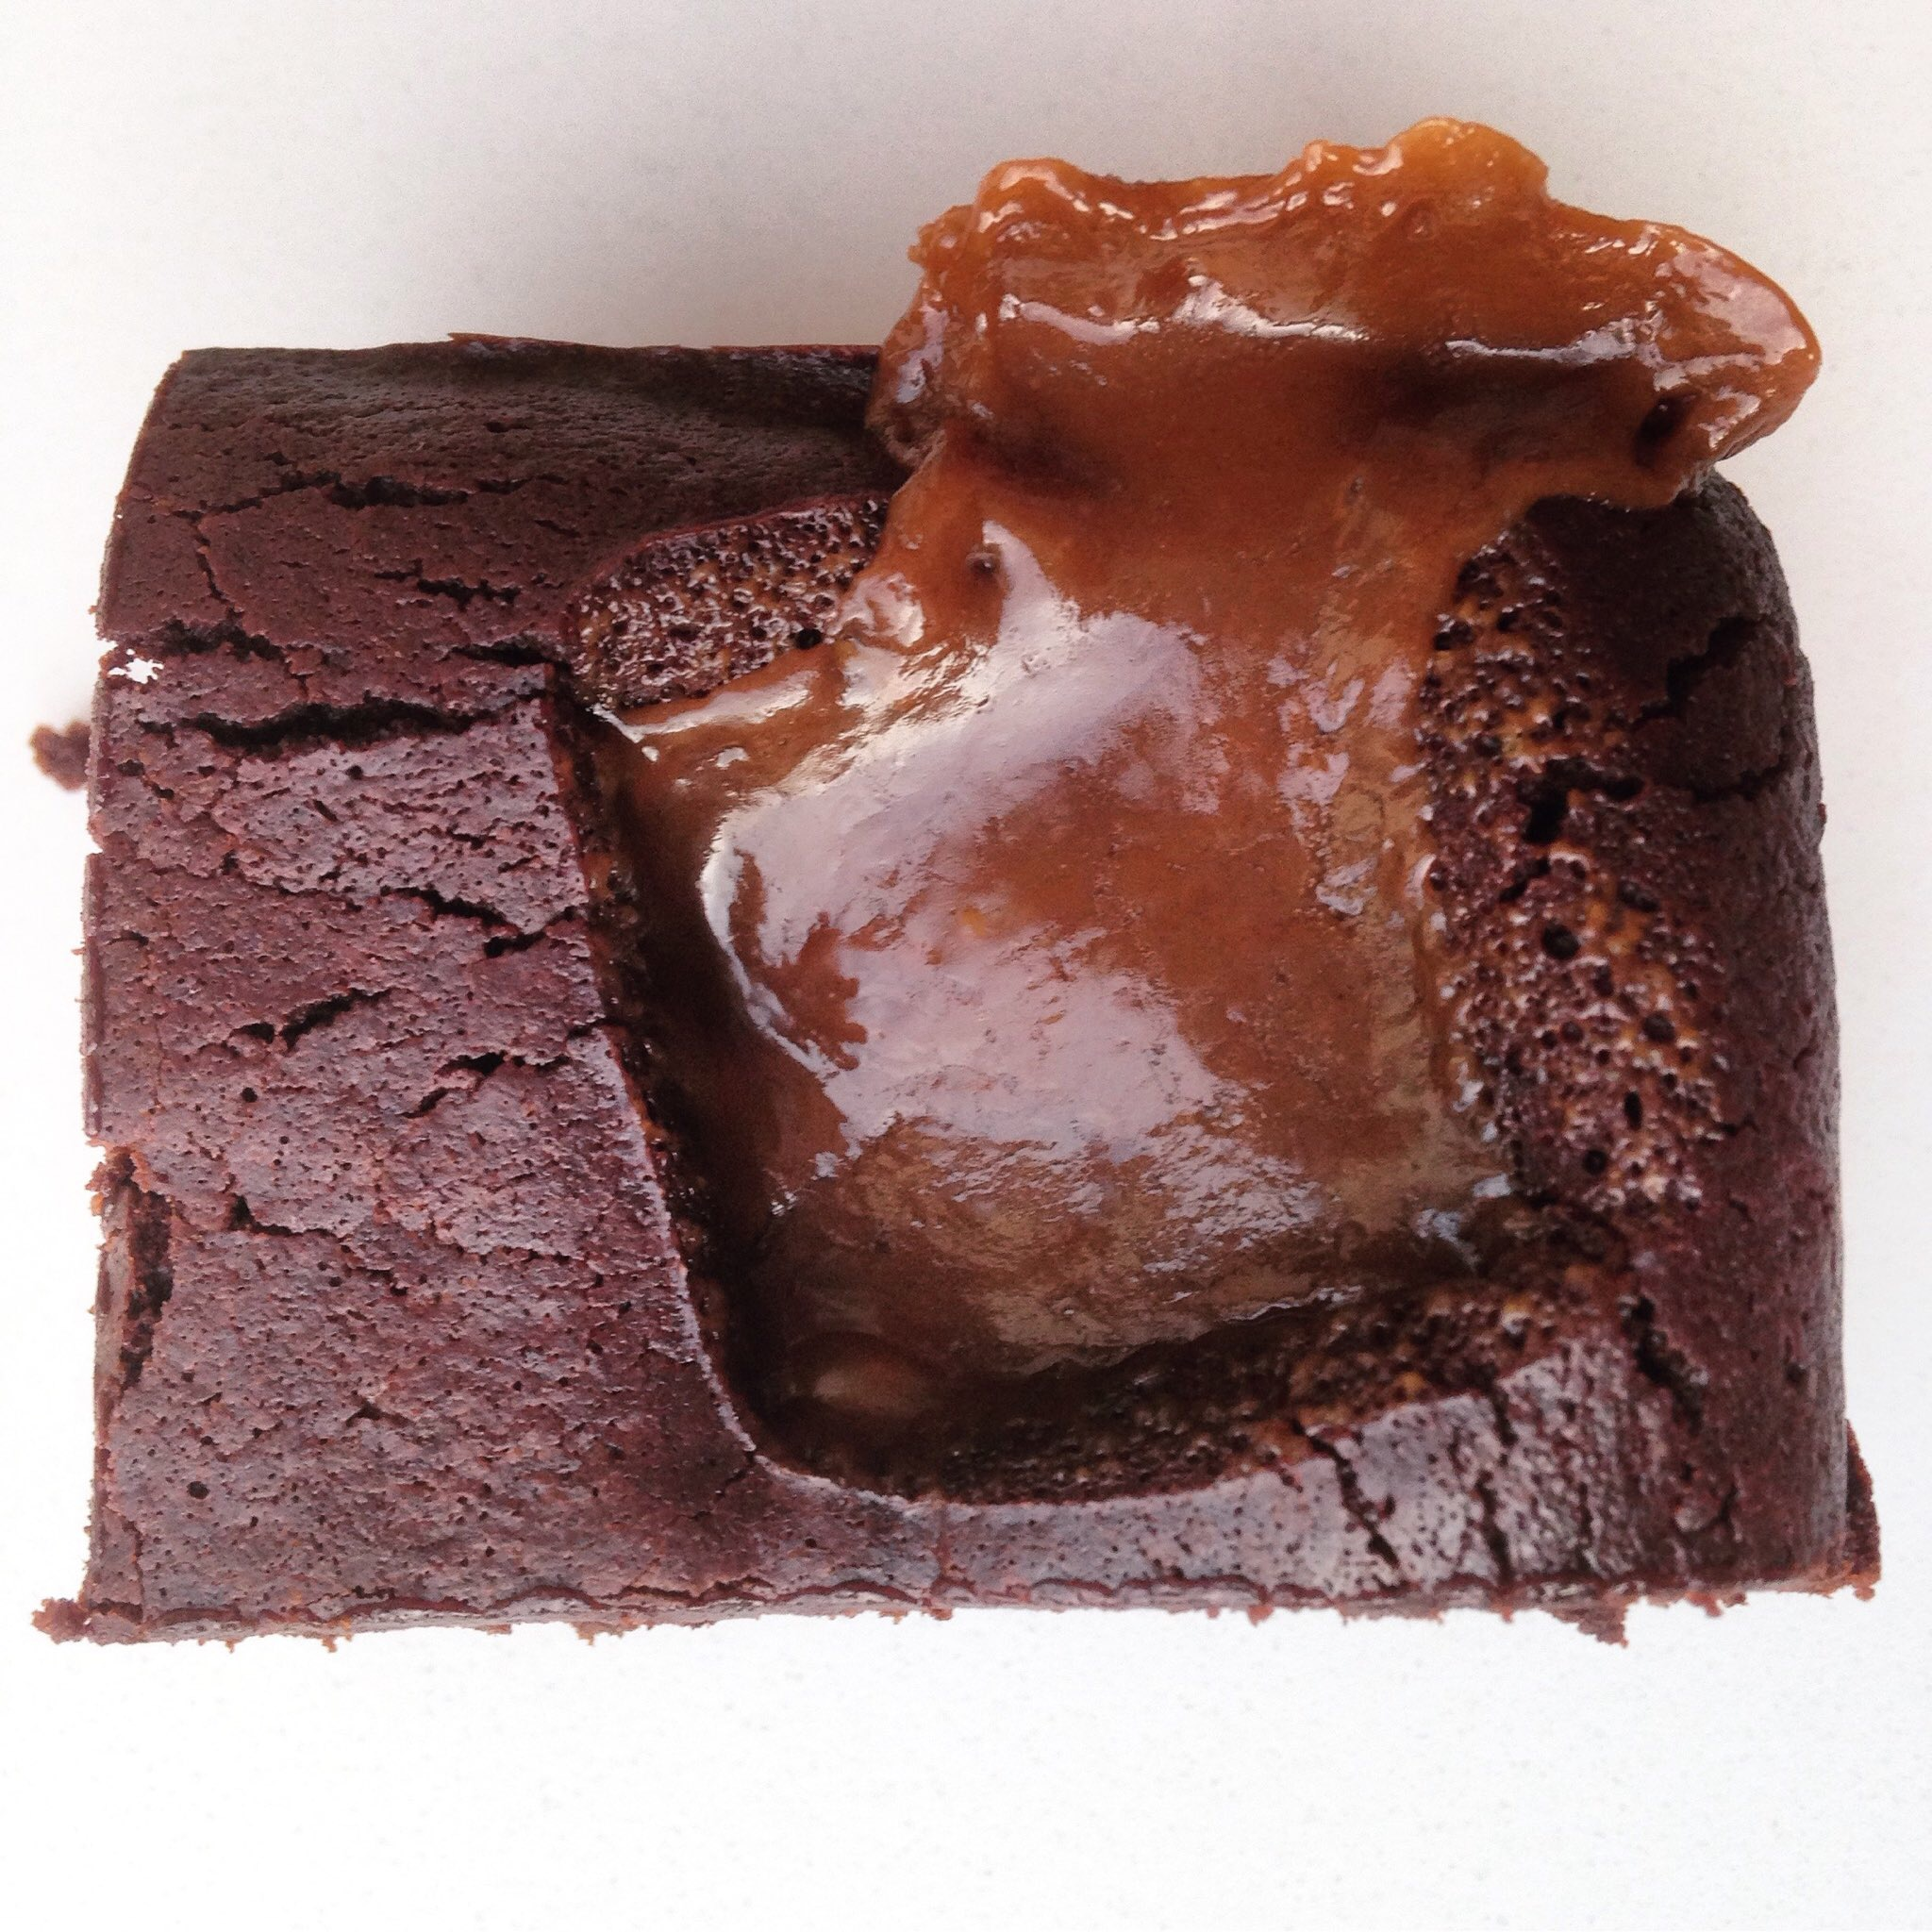 Sea Salted Butterscotch Brownies – serves 10